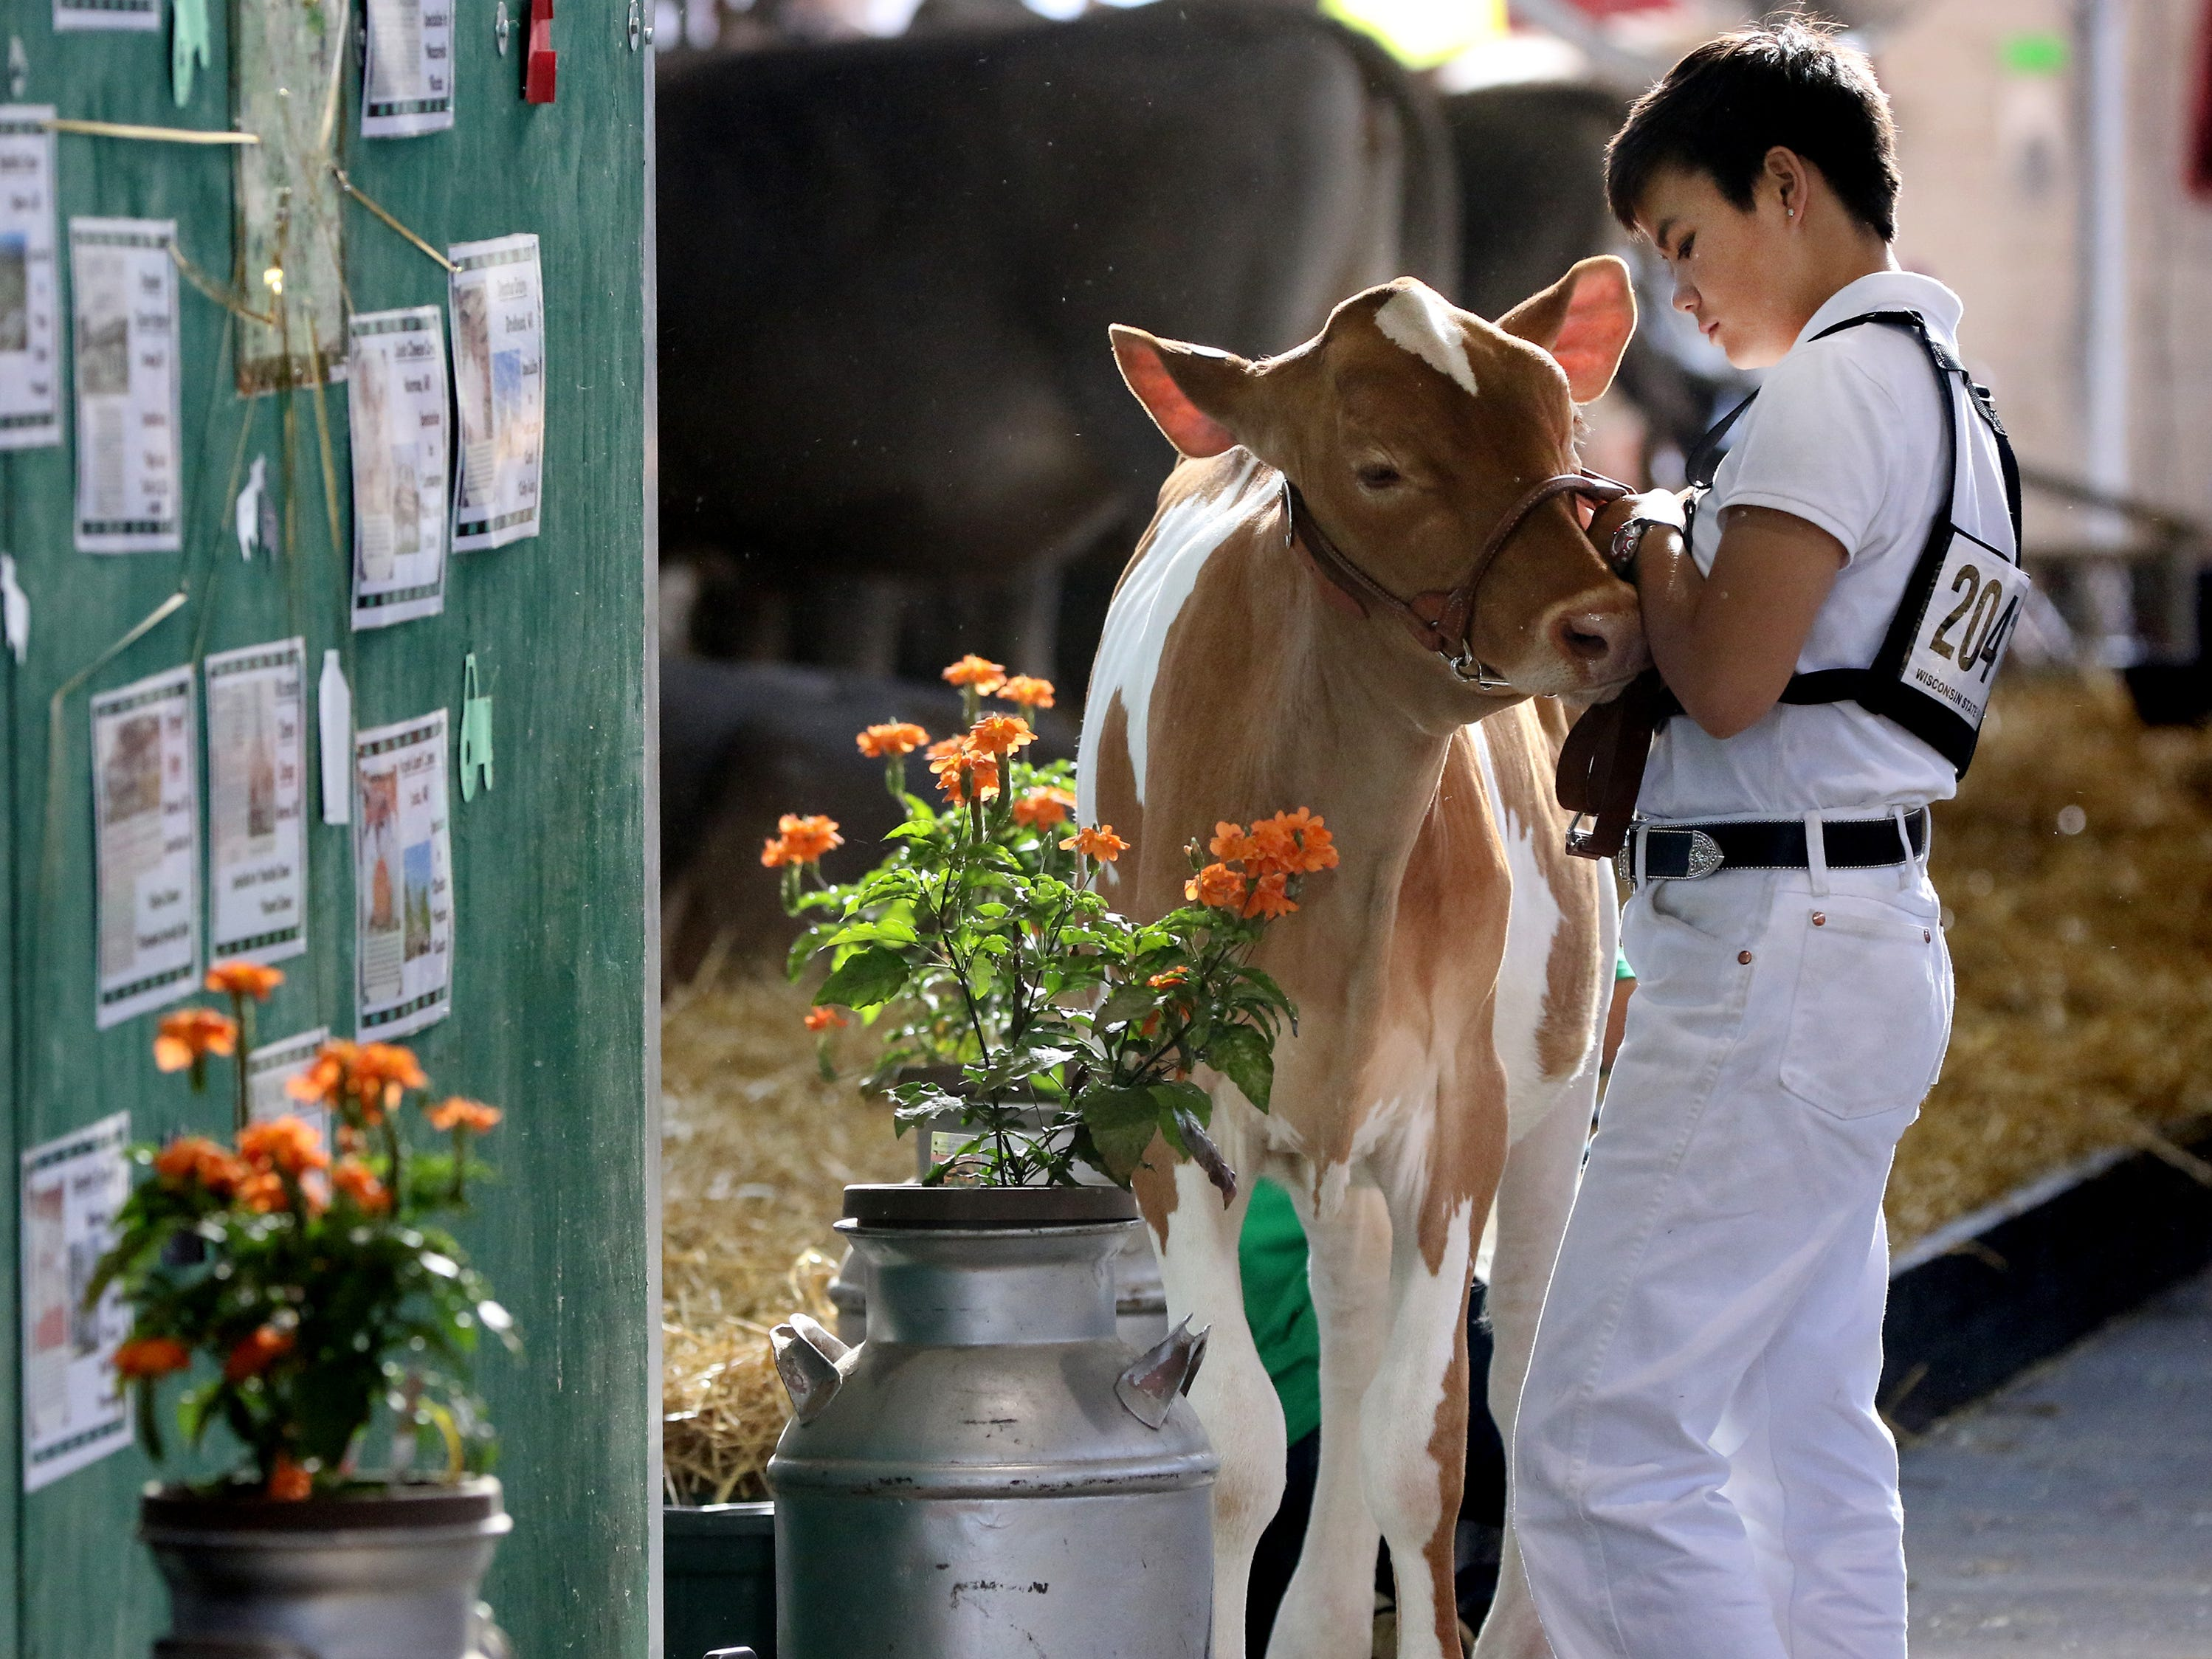 Averey Marean of Albany waits with her Gurnsey spring calf for show competition on opening day of the Wisconsin State Fair in West Allis on Aug. 2.